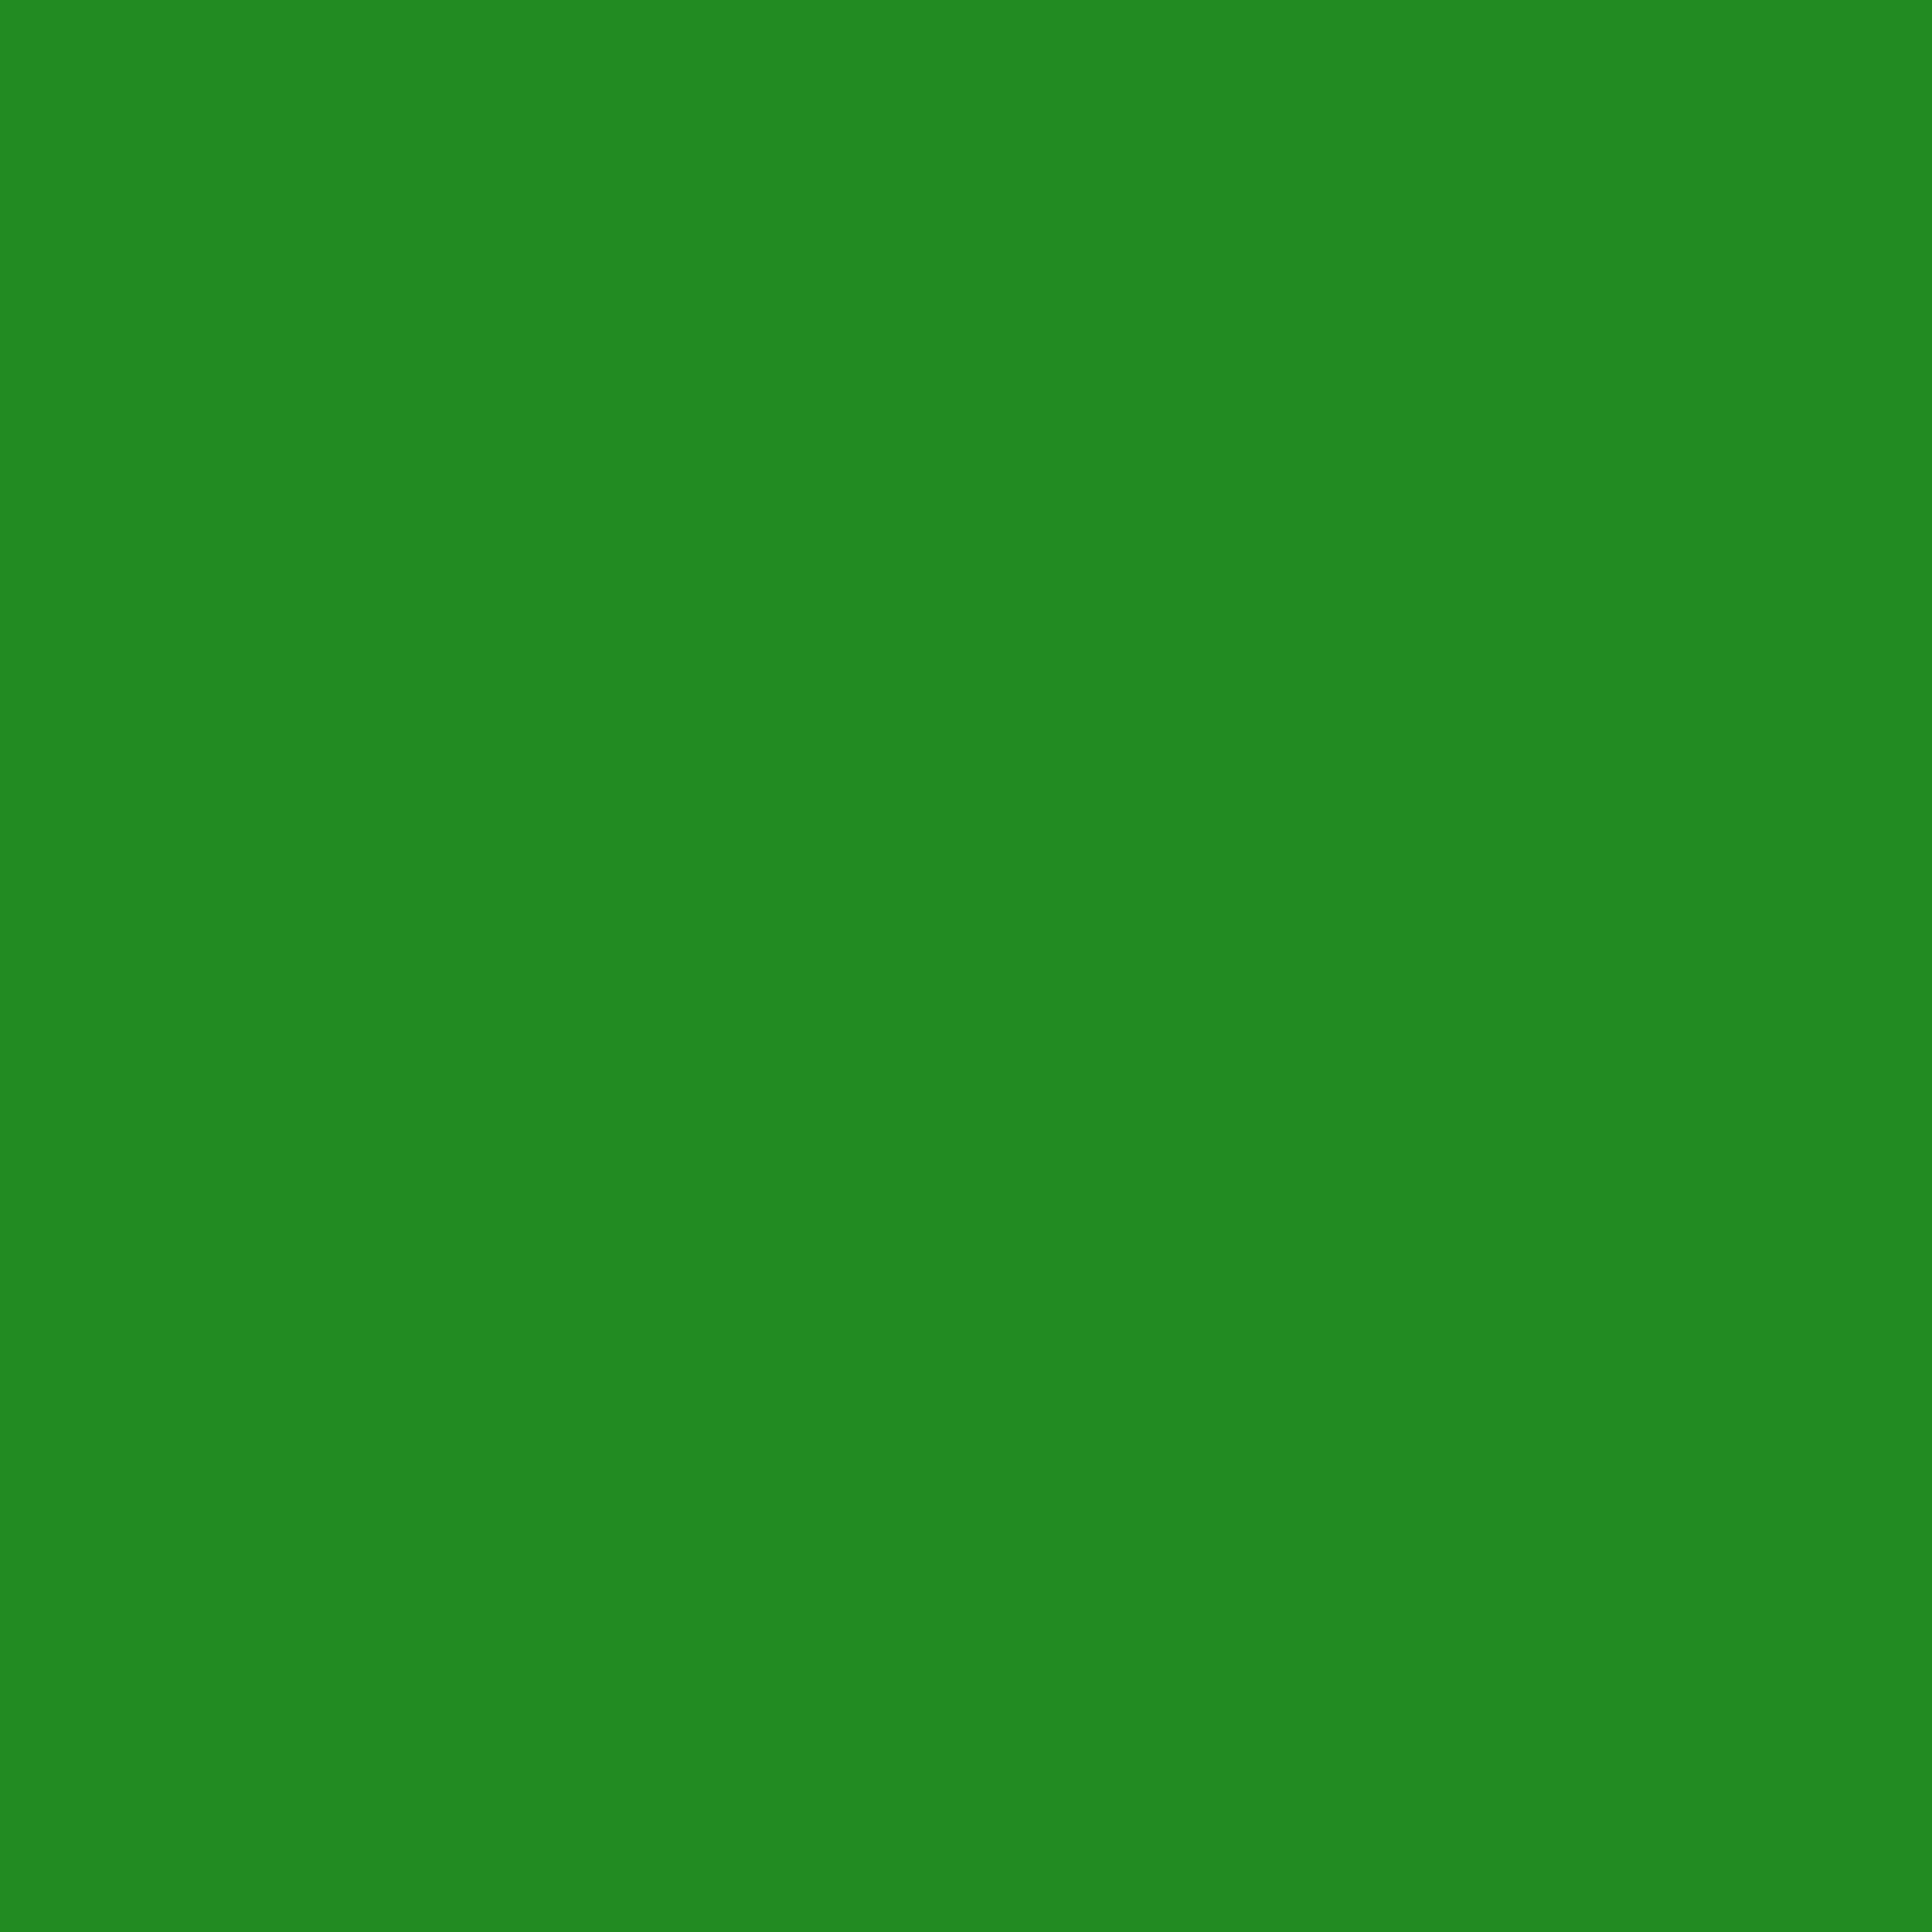 2048x2048 Forest Green For Web Solid Color Background